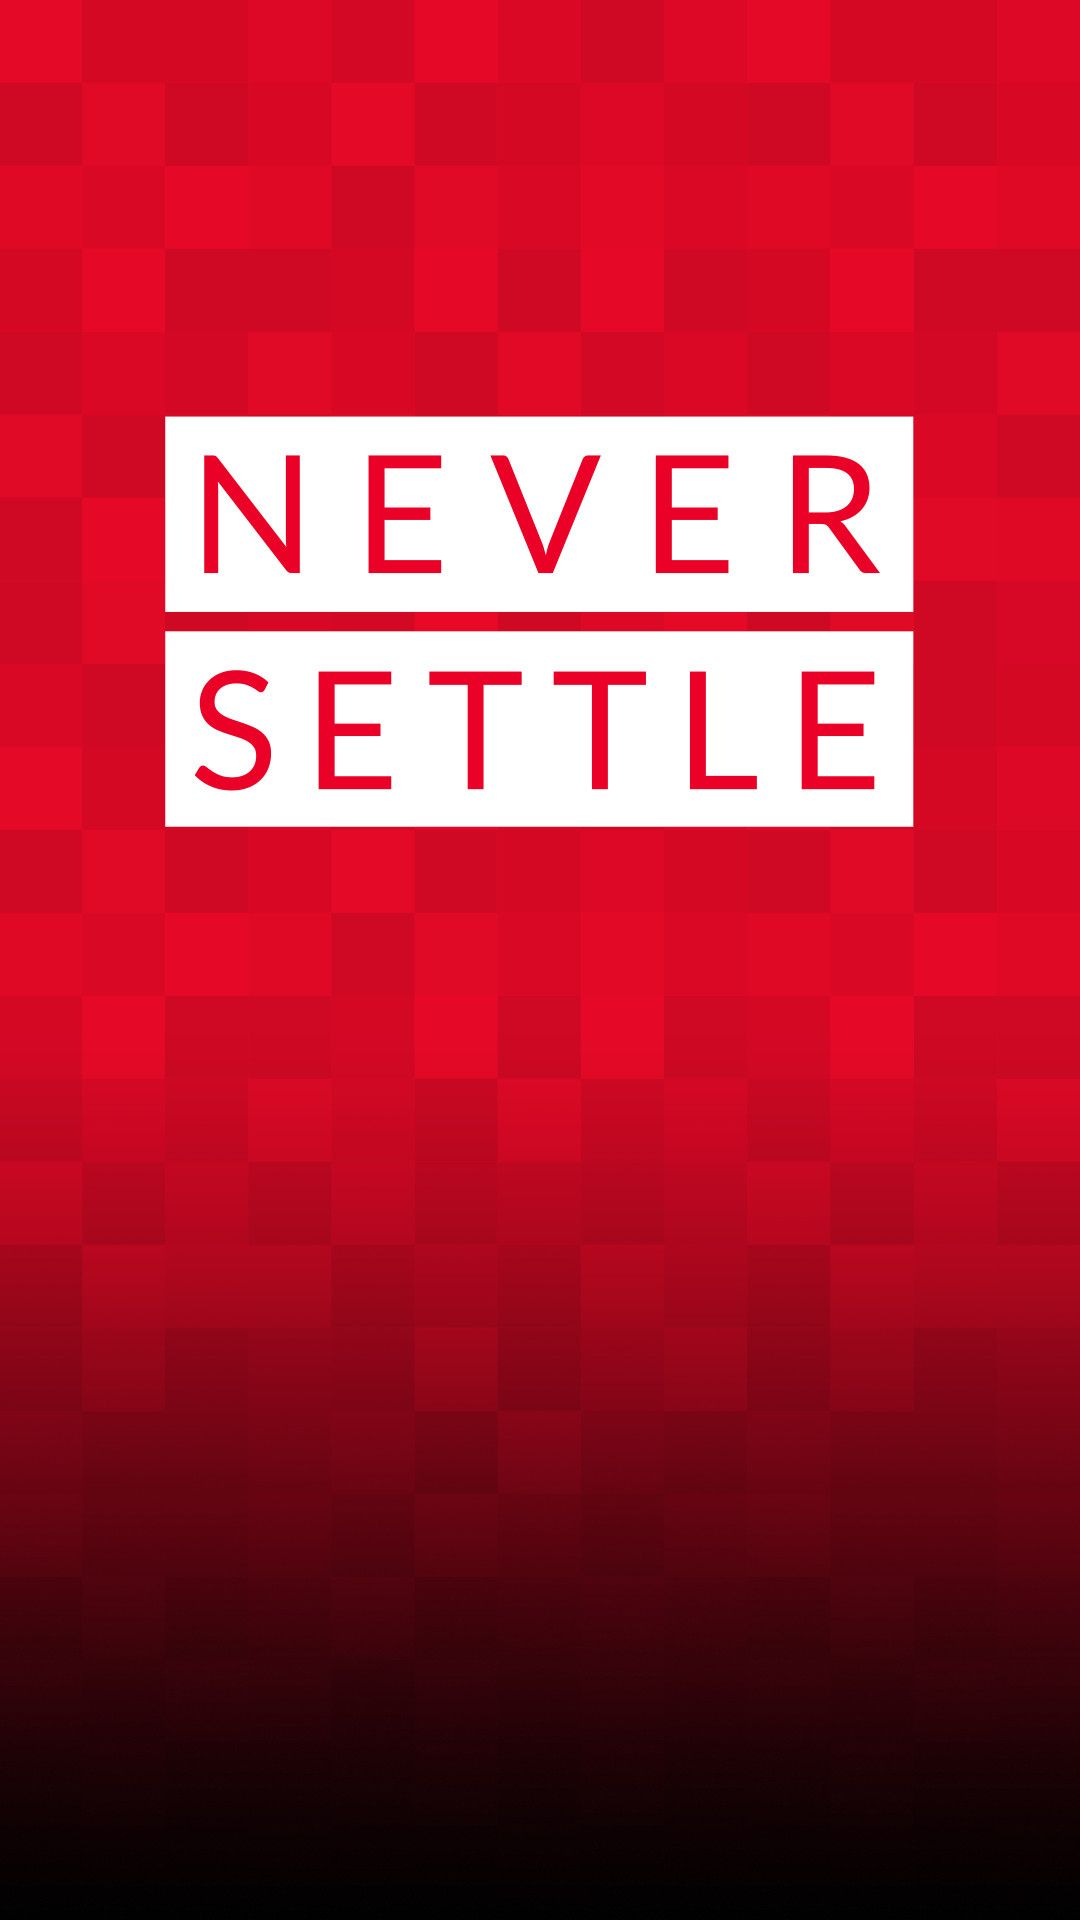 Oneplus One Lock Wall Tap To See More One Plus 2 Never